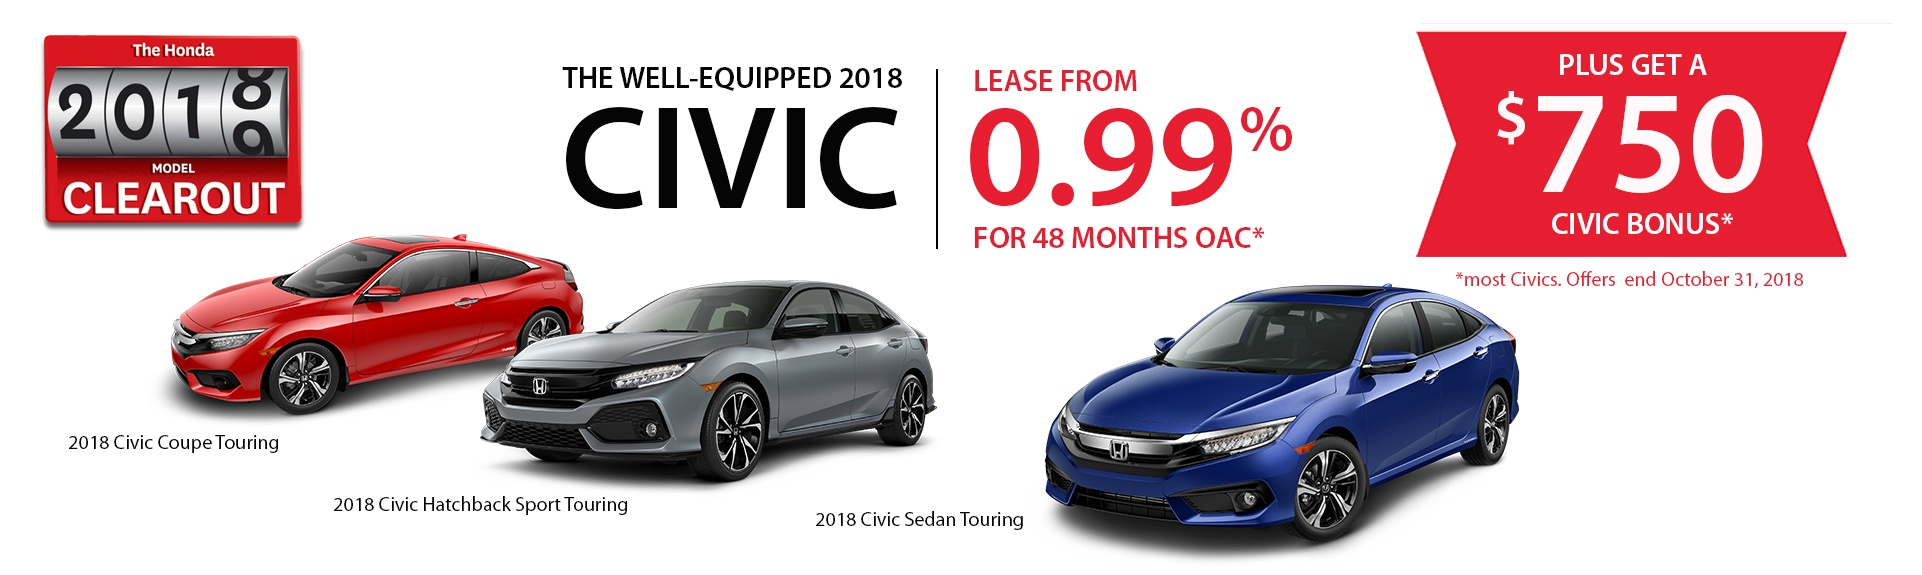 2018 Civic Clearout